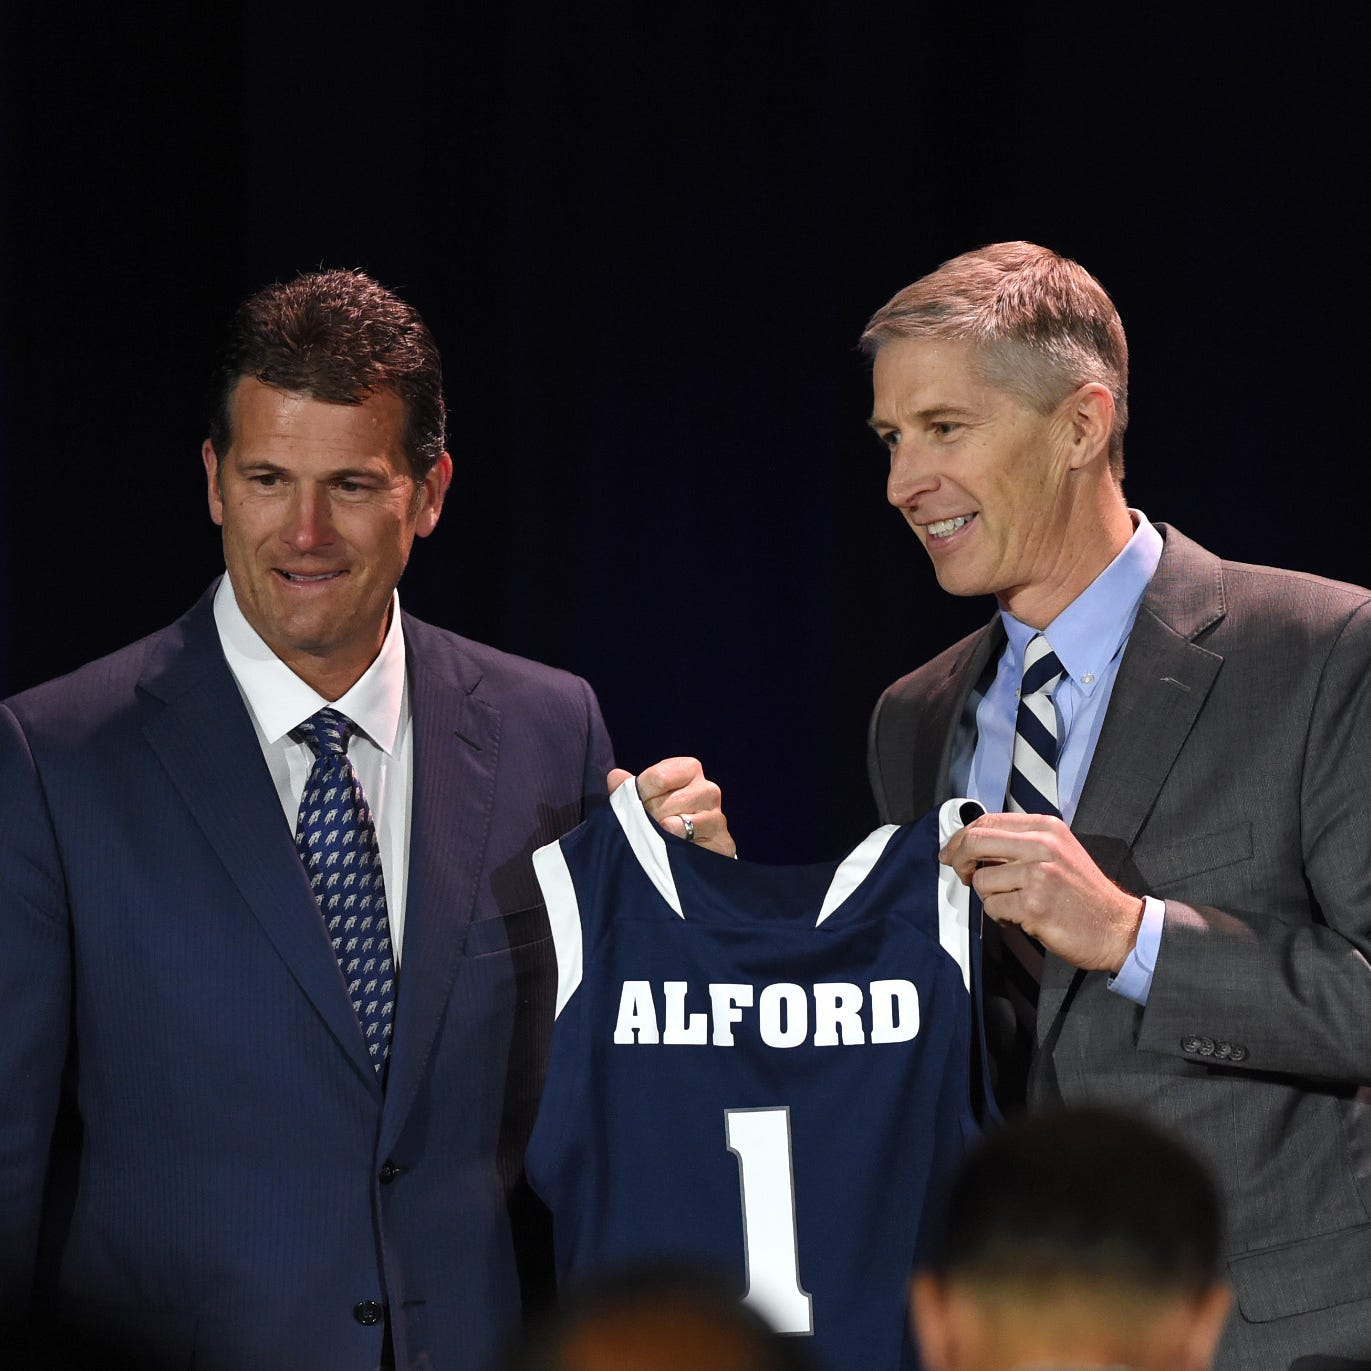 'He learned from it': Before hire, UNR asked Alford about handling of player's rape case